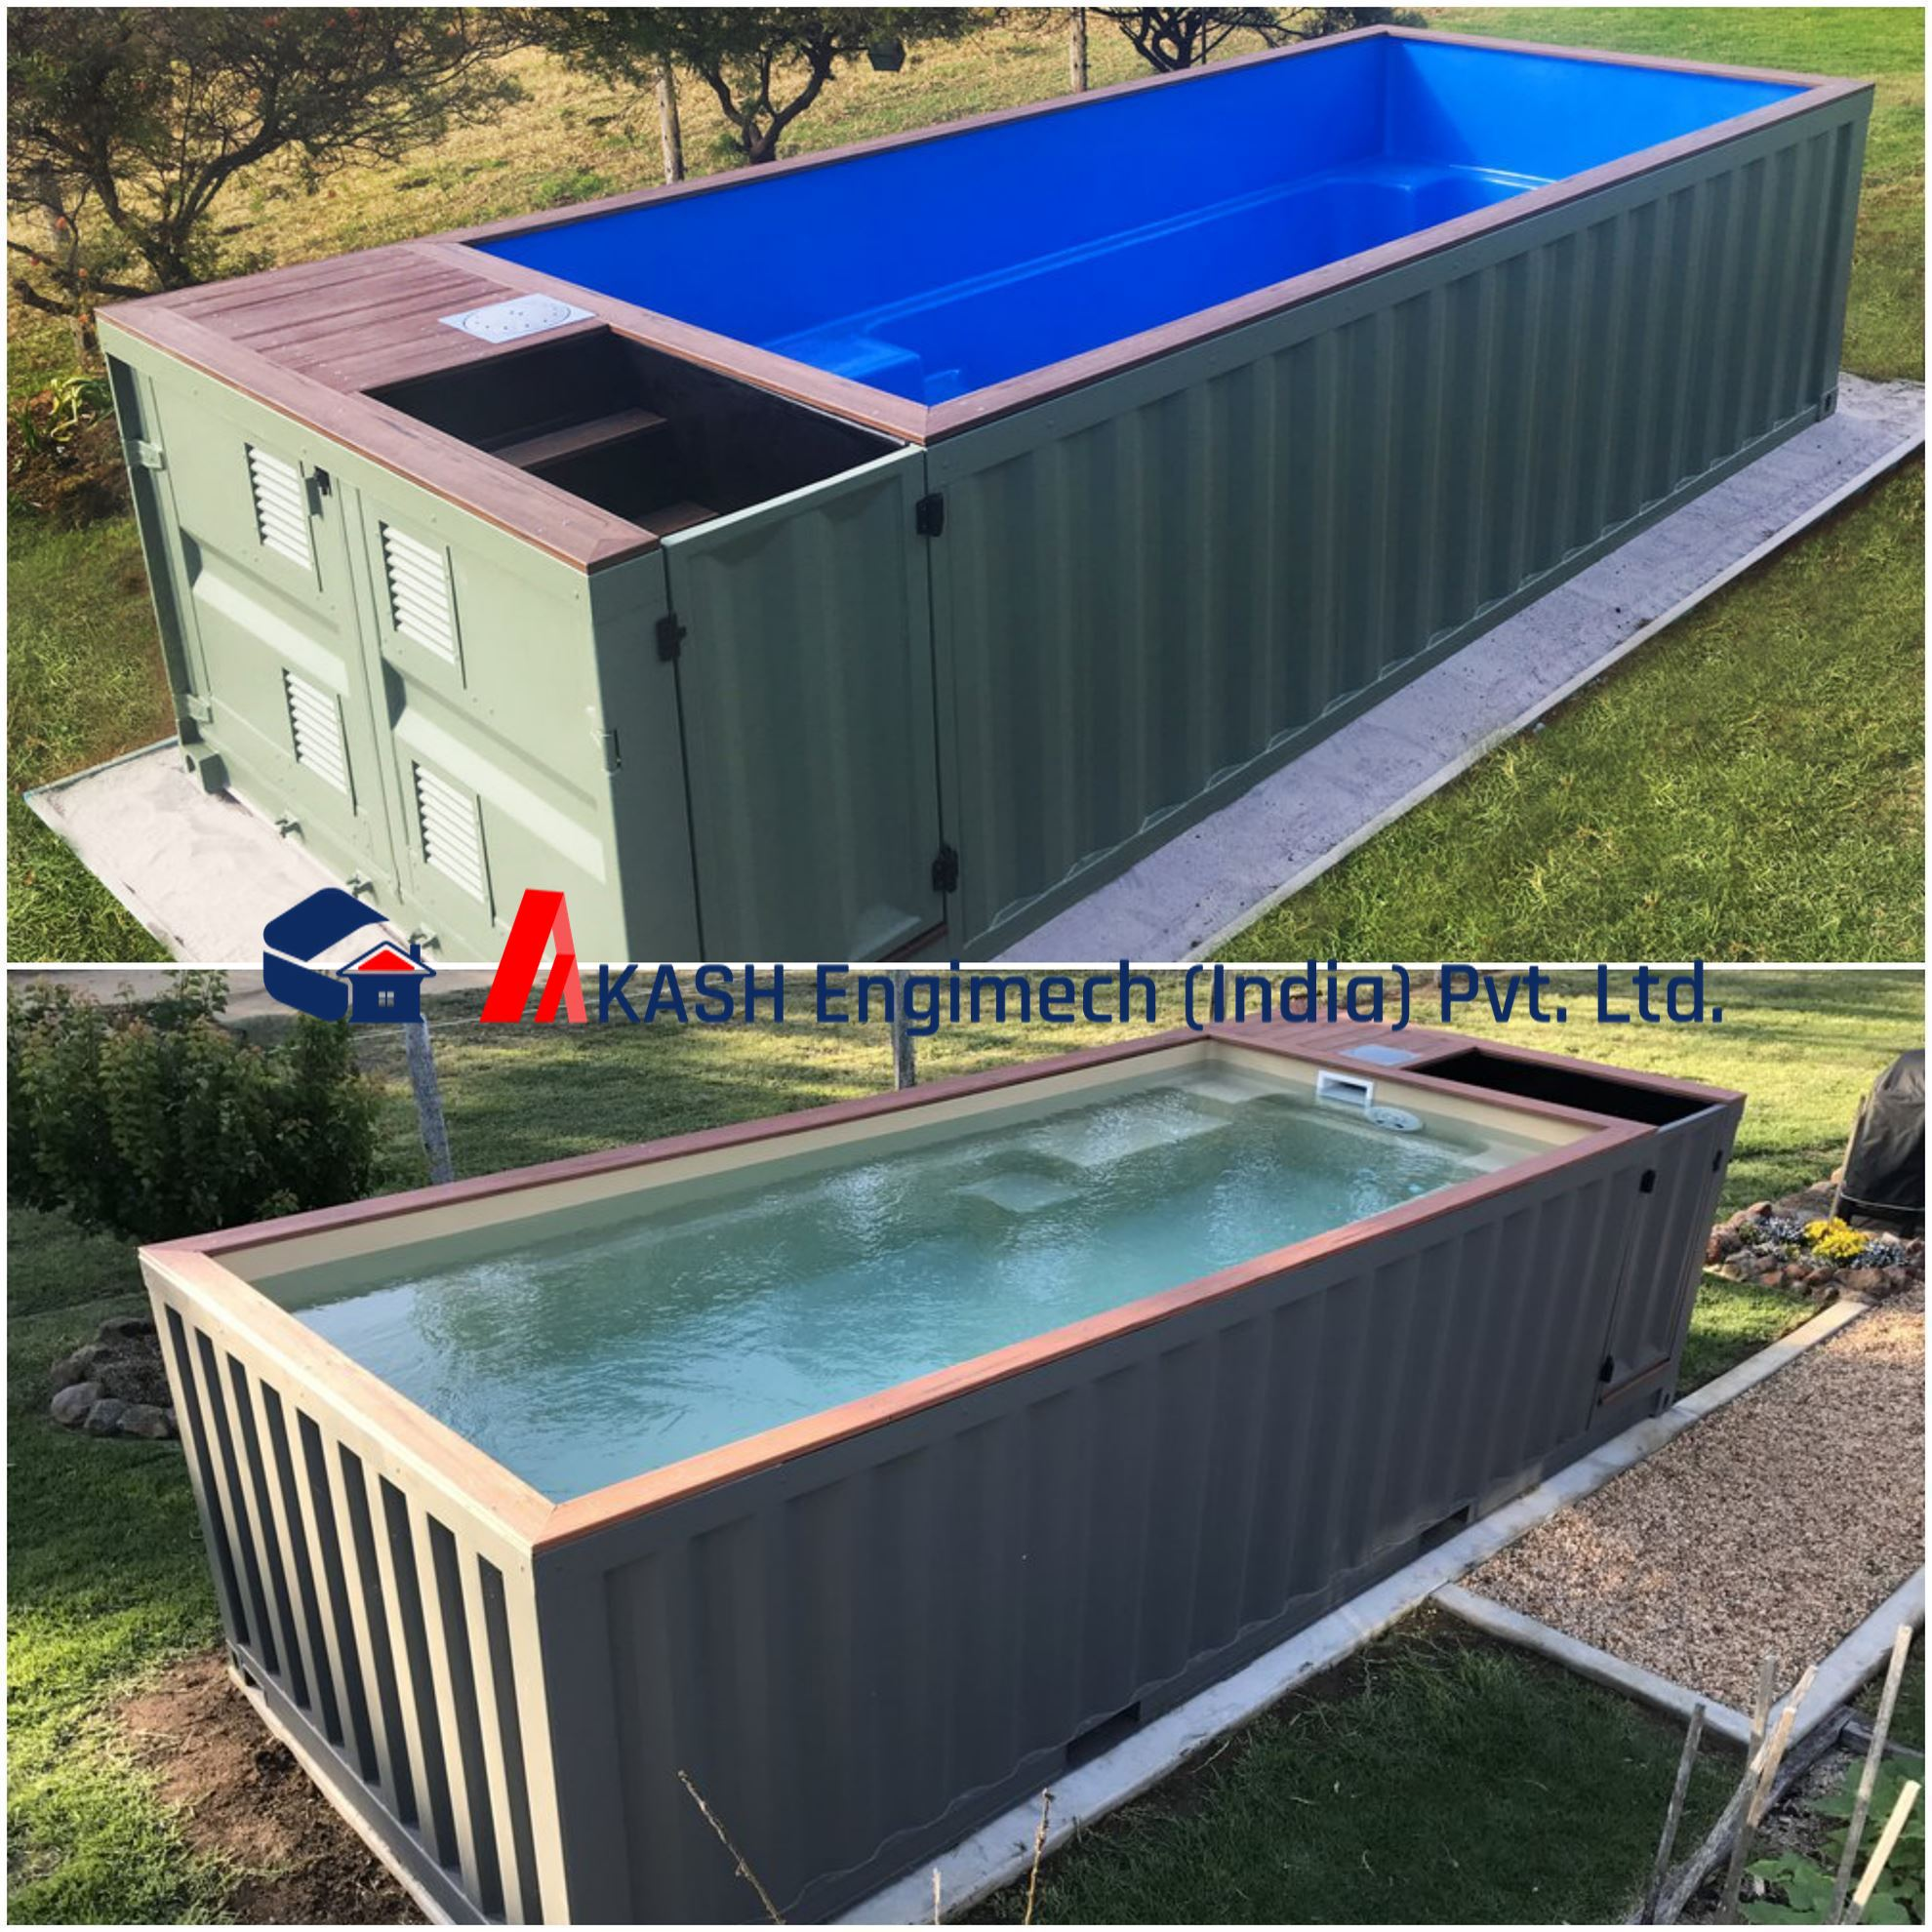 Akash Engimech India Pvt Ltd 20 39 Swimming Pool Container